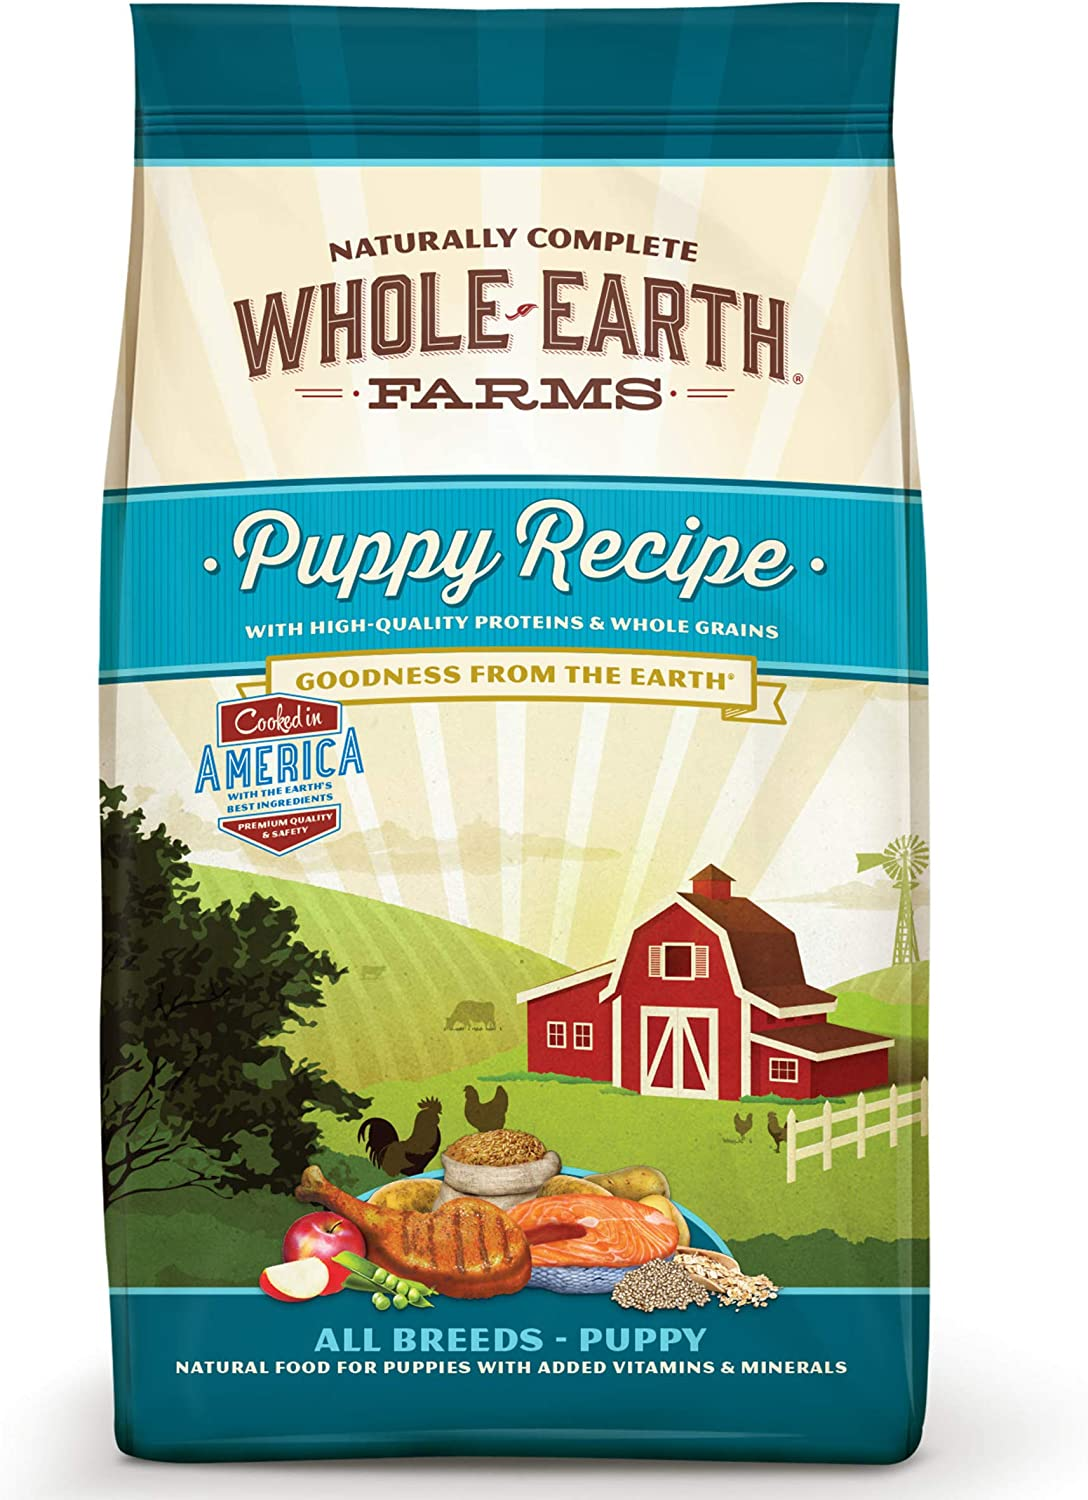 Whole Earth Farms Natural Dry Dog Food Puppy Recipe - 12.0 lb Bag